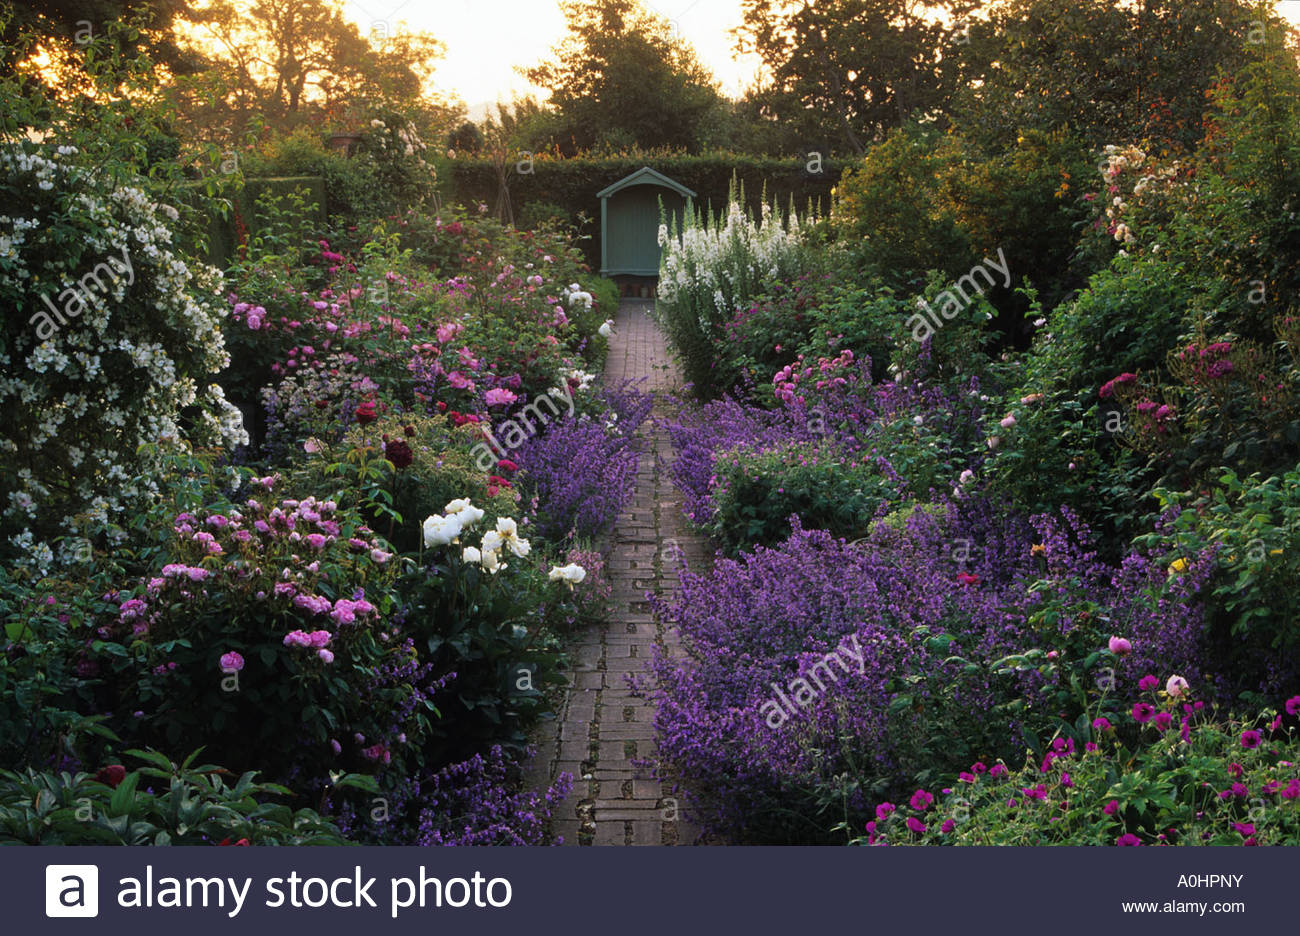 High Quality Scented Garden Room At Dawn. Beech Hedge. Path Leading To Covered Seat.  Roses. Peonies. Paeonias